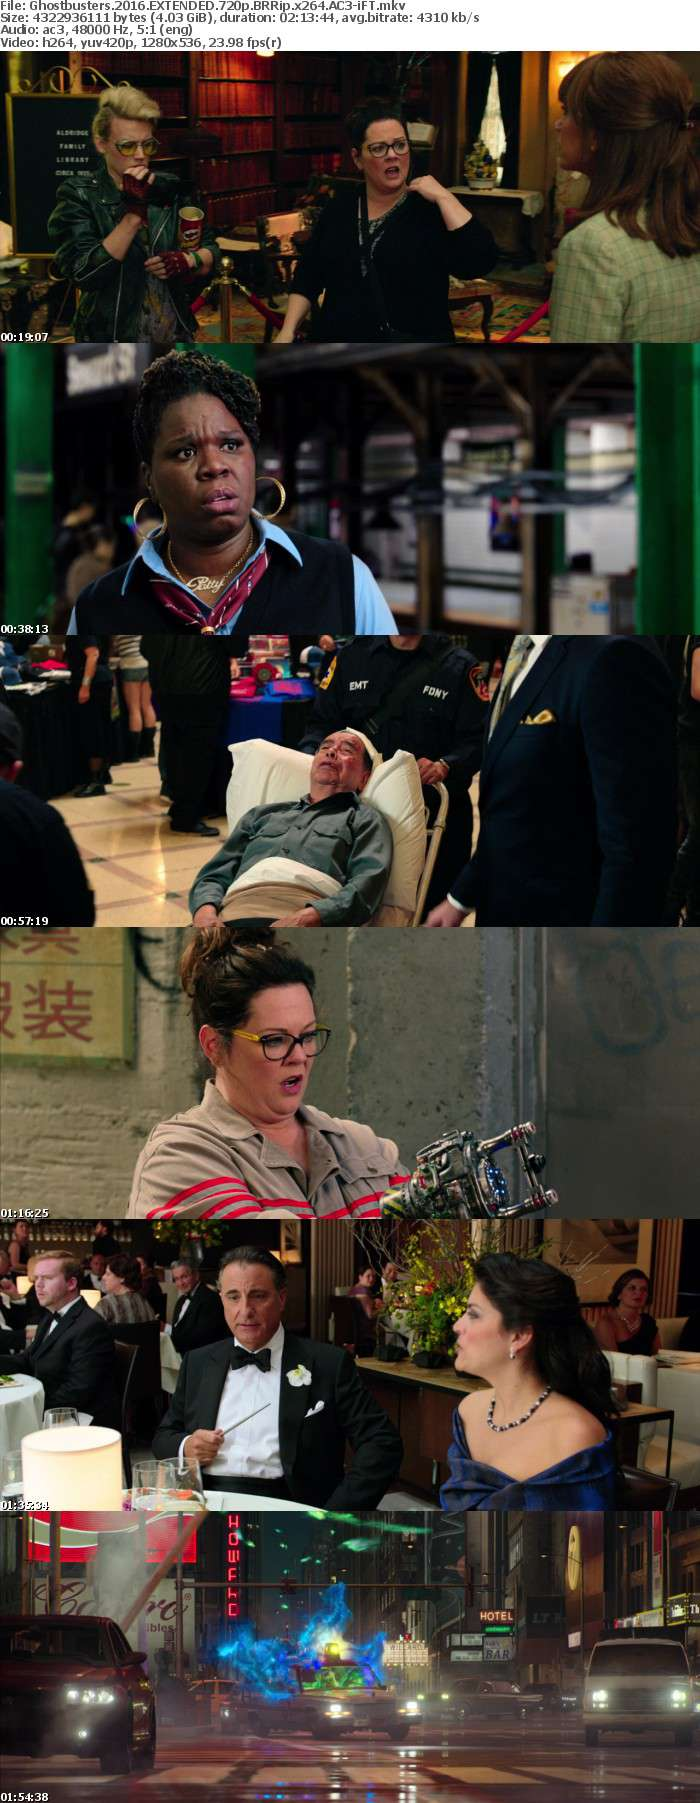 Ghostbusters 2016 EXTENDED 720p BRRip x264 AC3-iFT